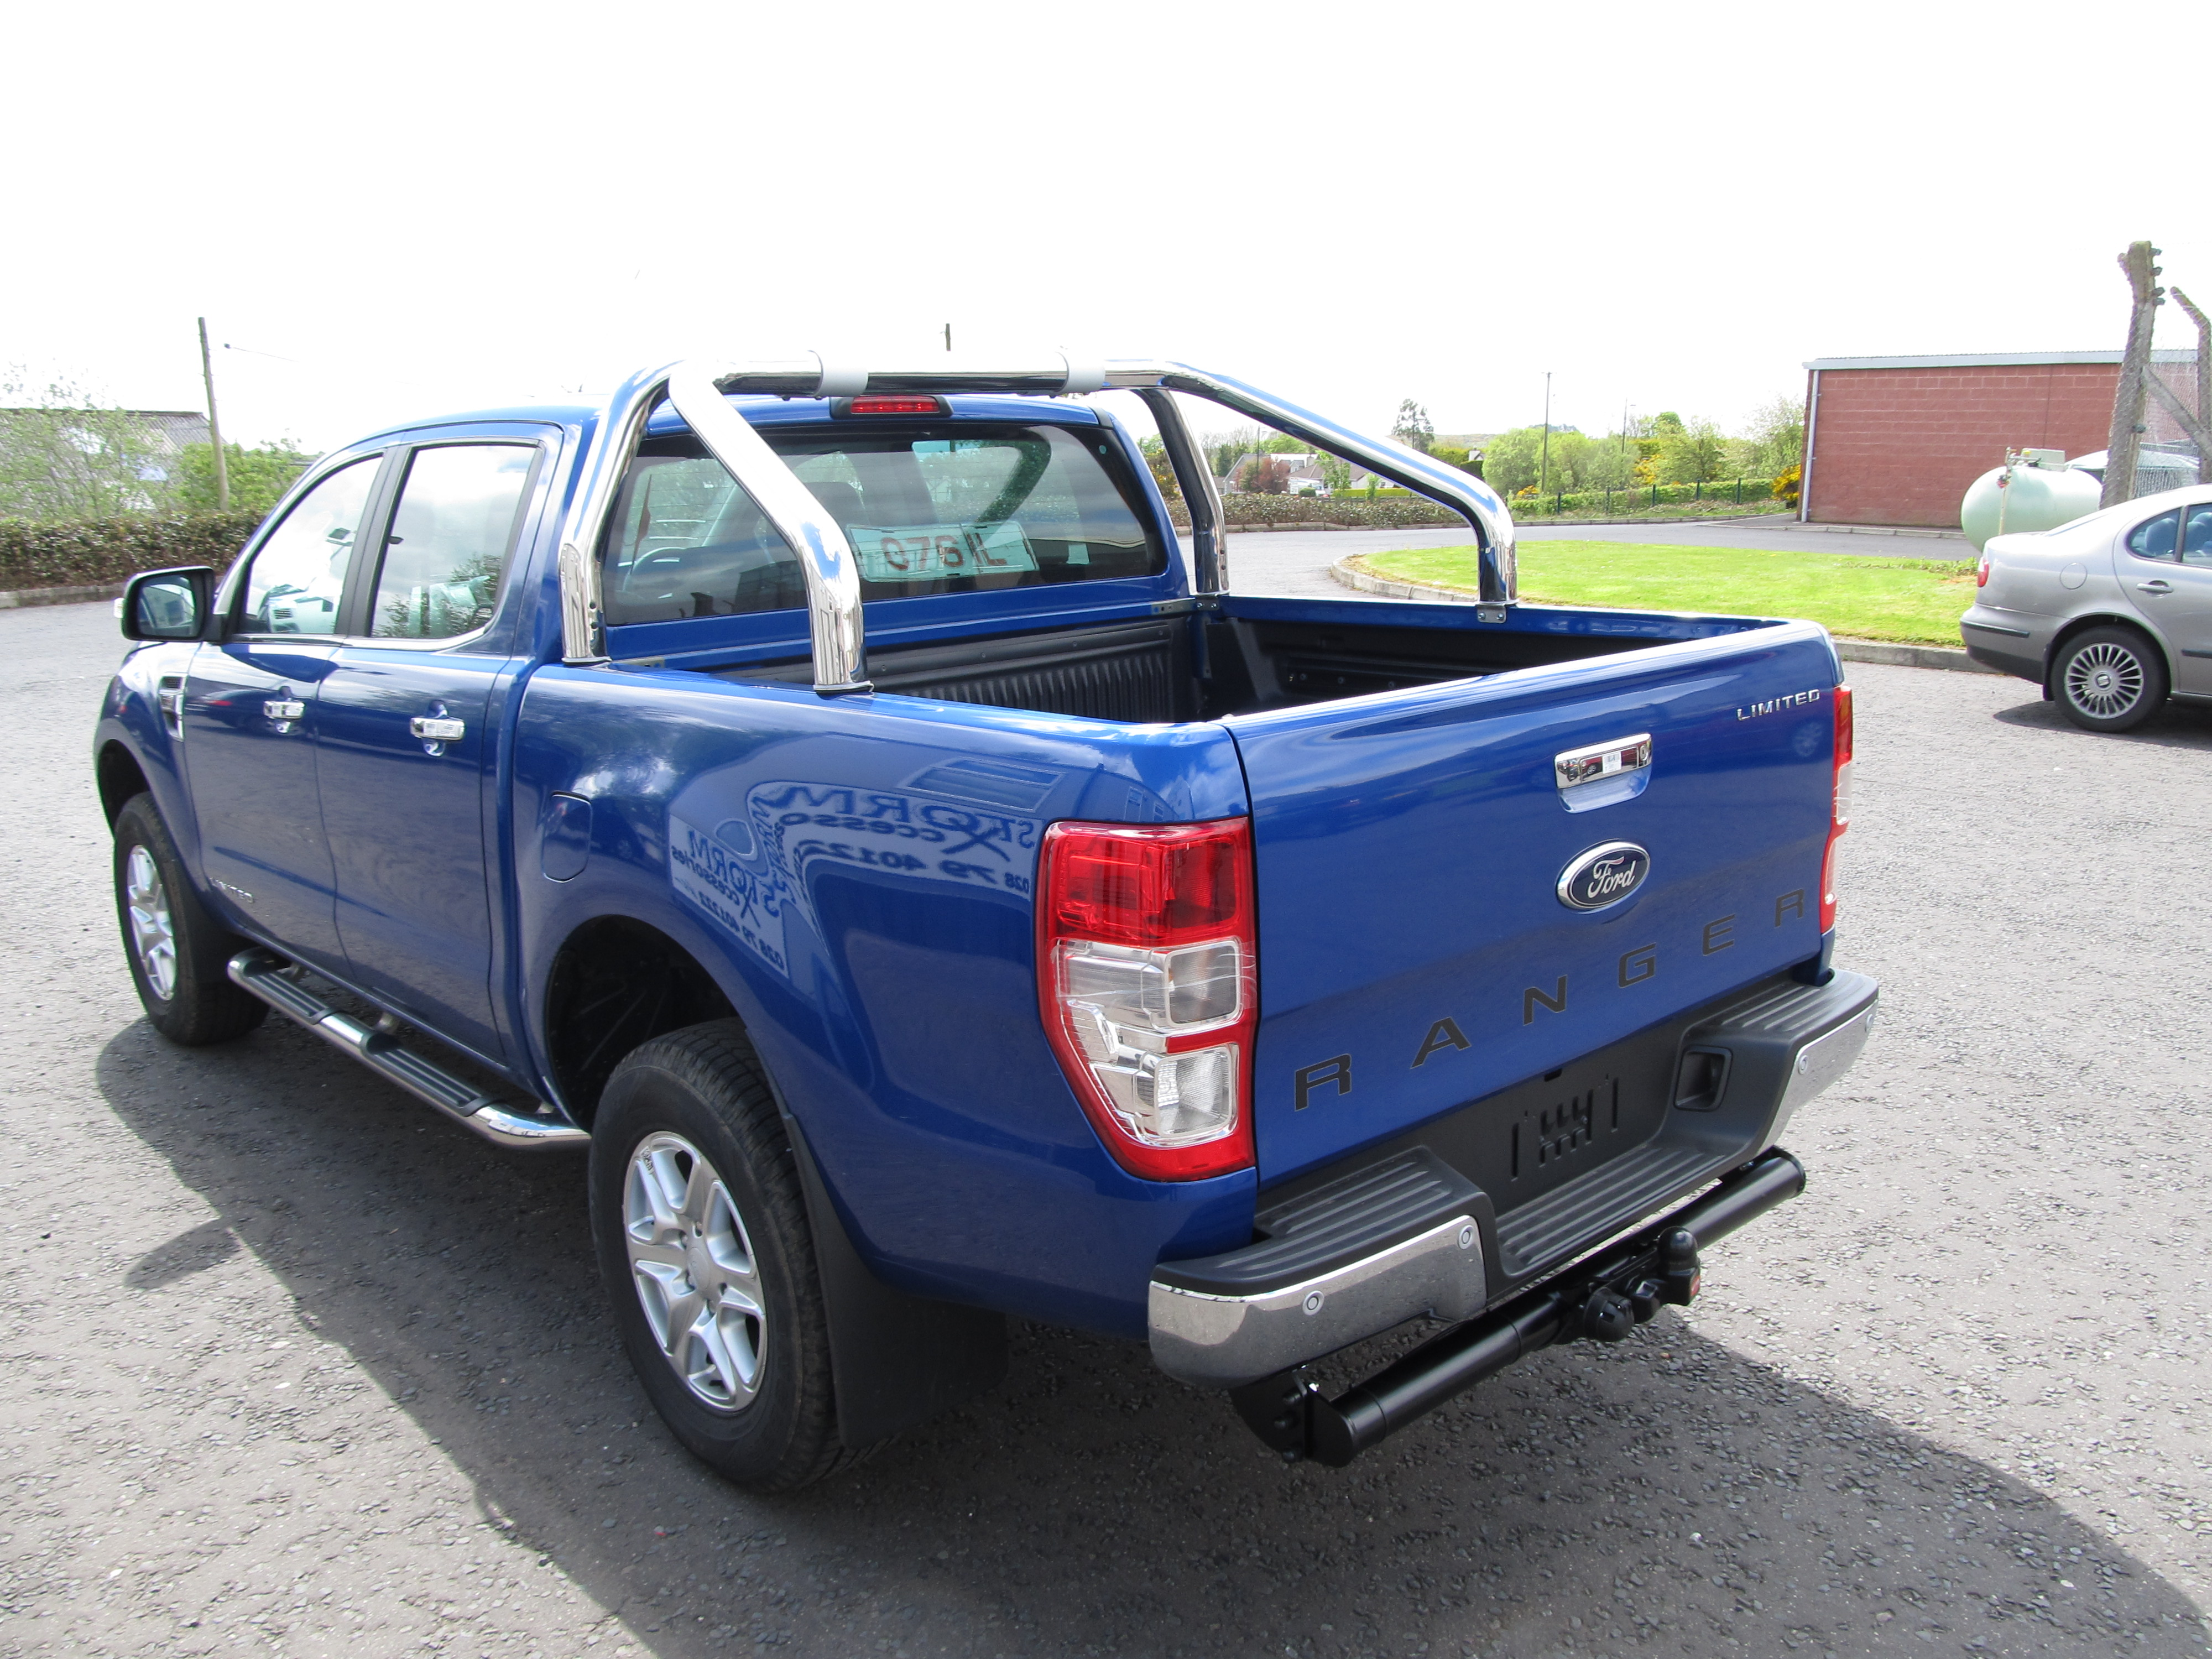 Ford Ranger T6 2012 On Tow Bar With For Vehicles With Bumper Fitted Storm Xccessories